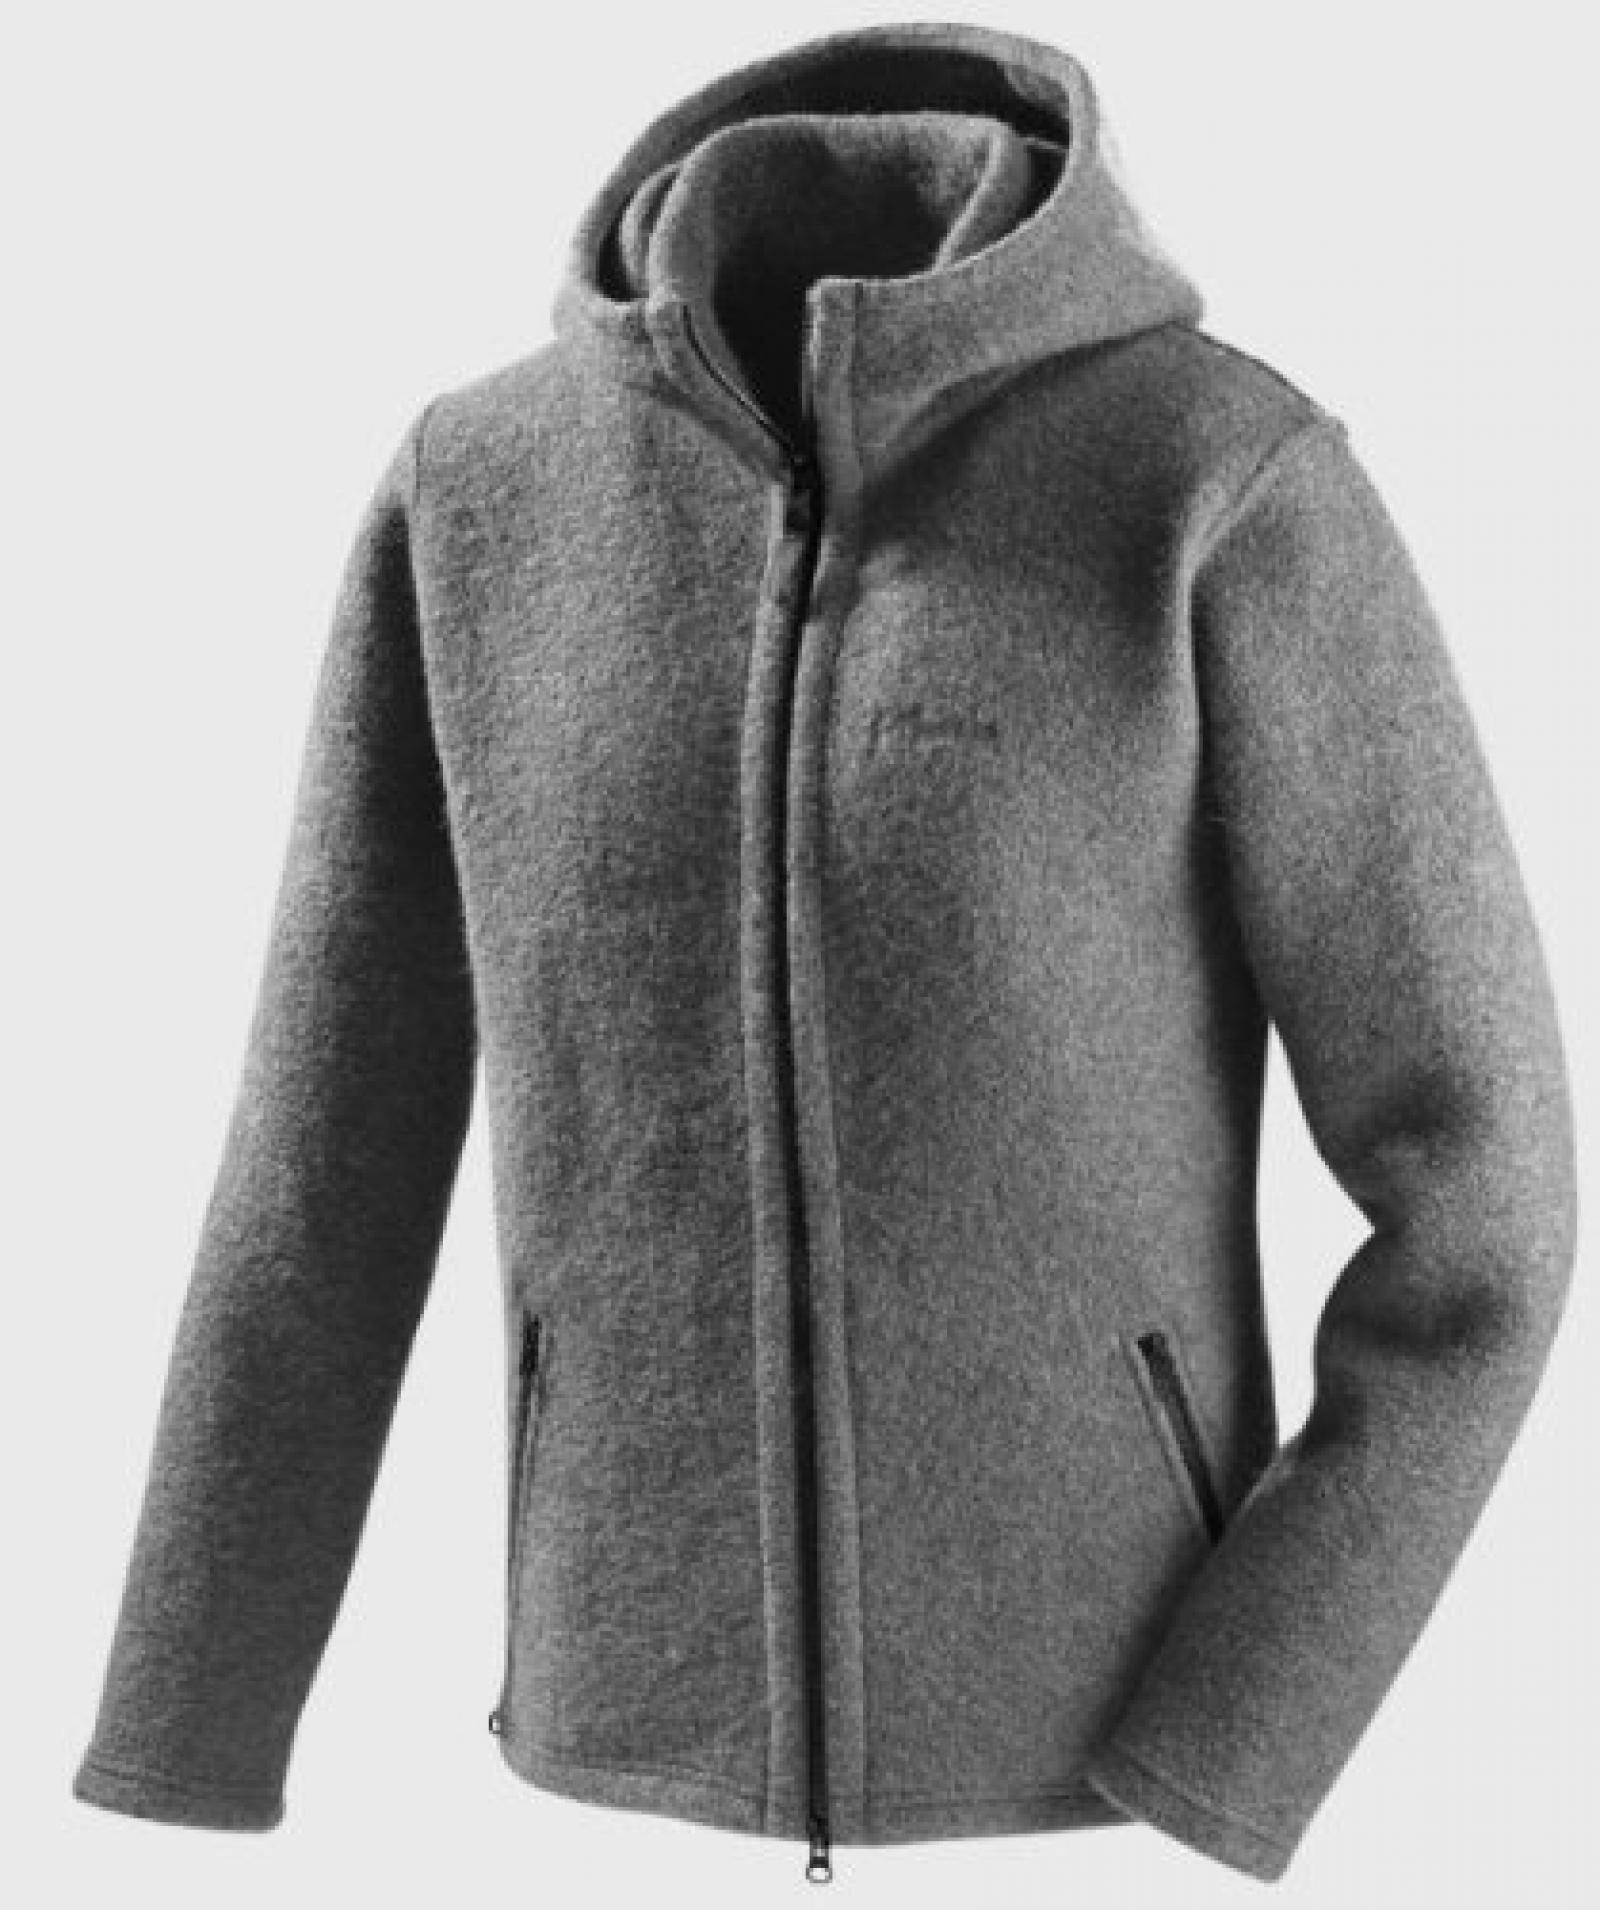 Mufflon Randy, Wolljacke, unisex, grey - grau